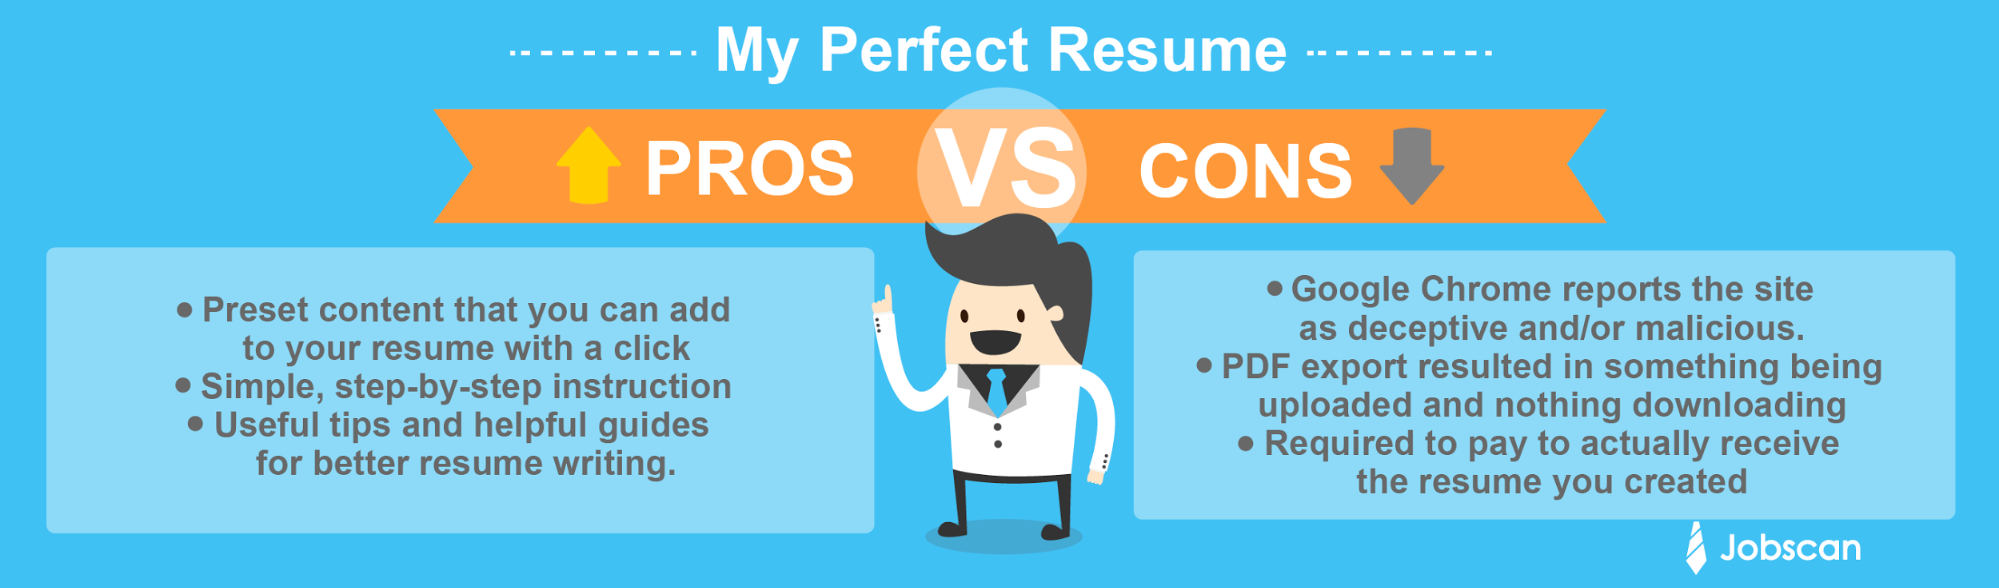 perfect review my resume 3123